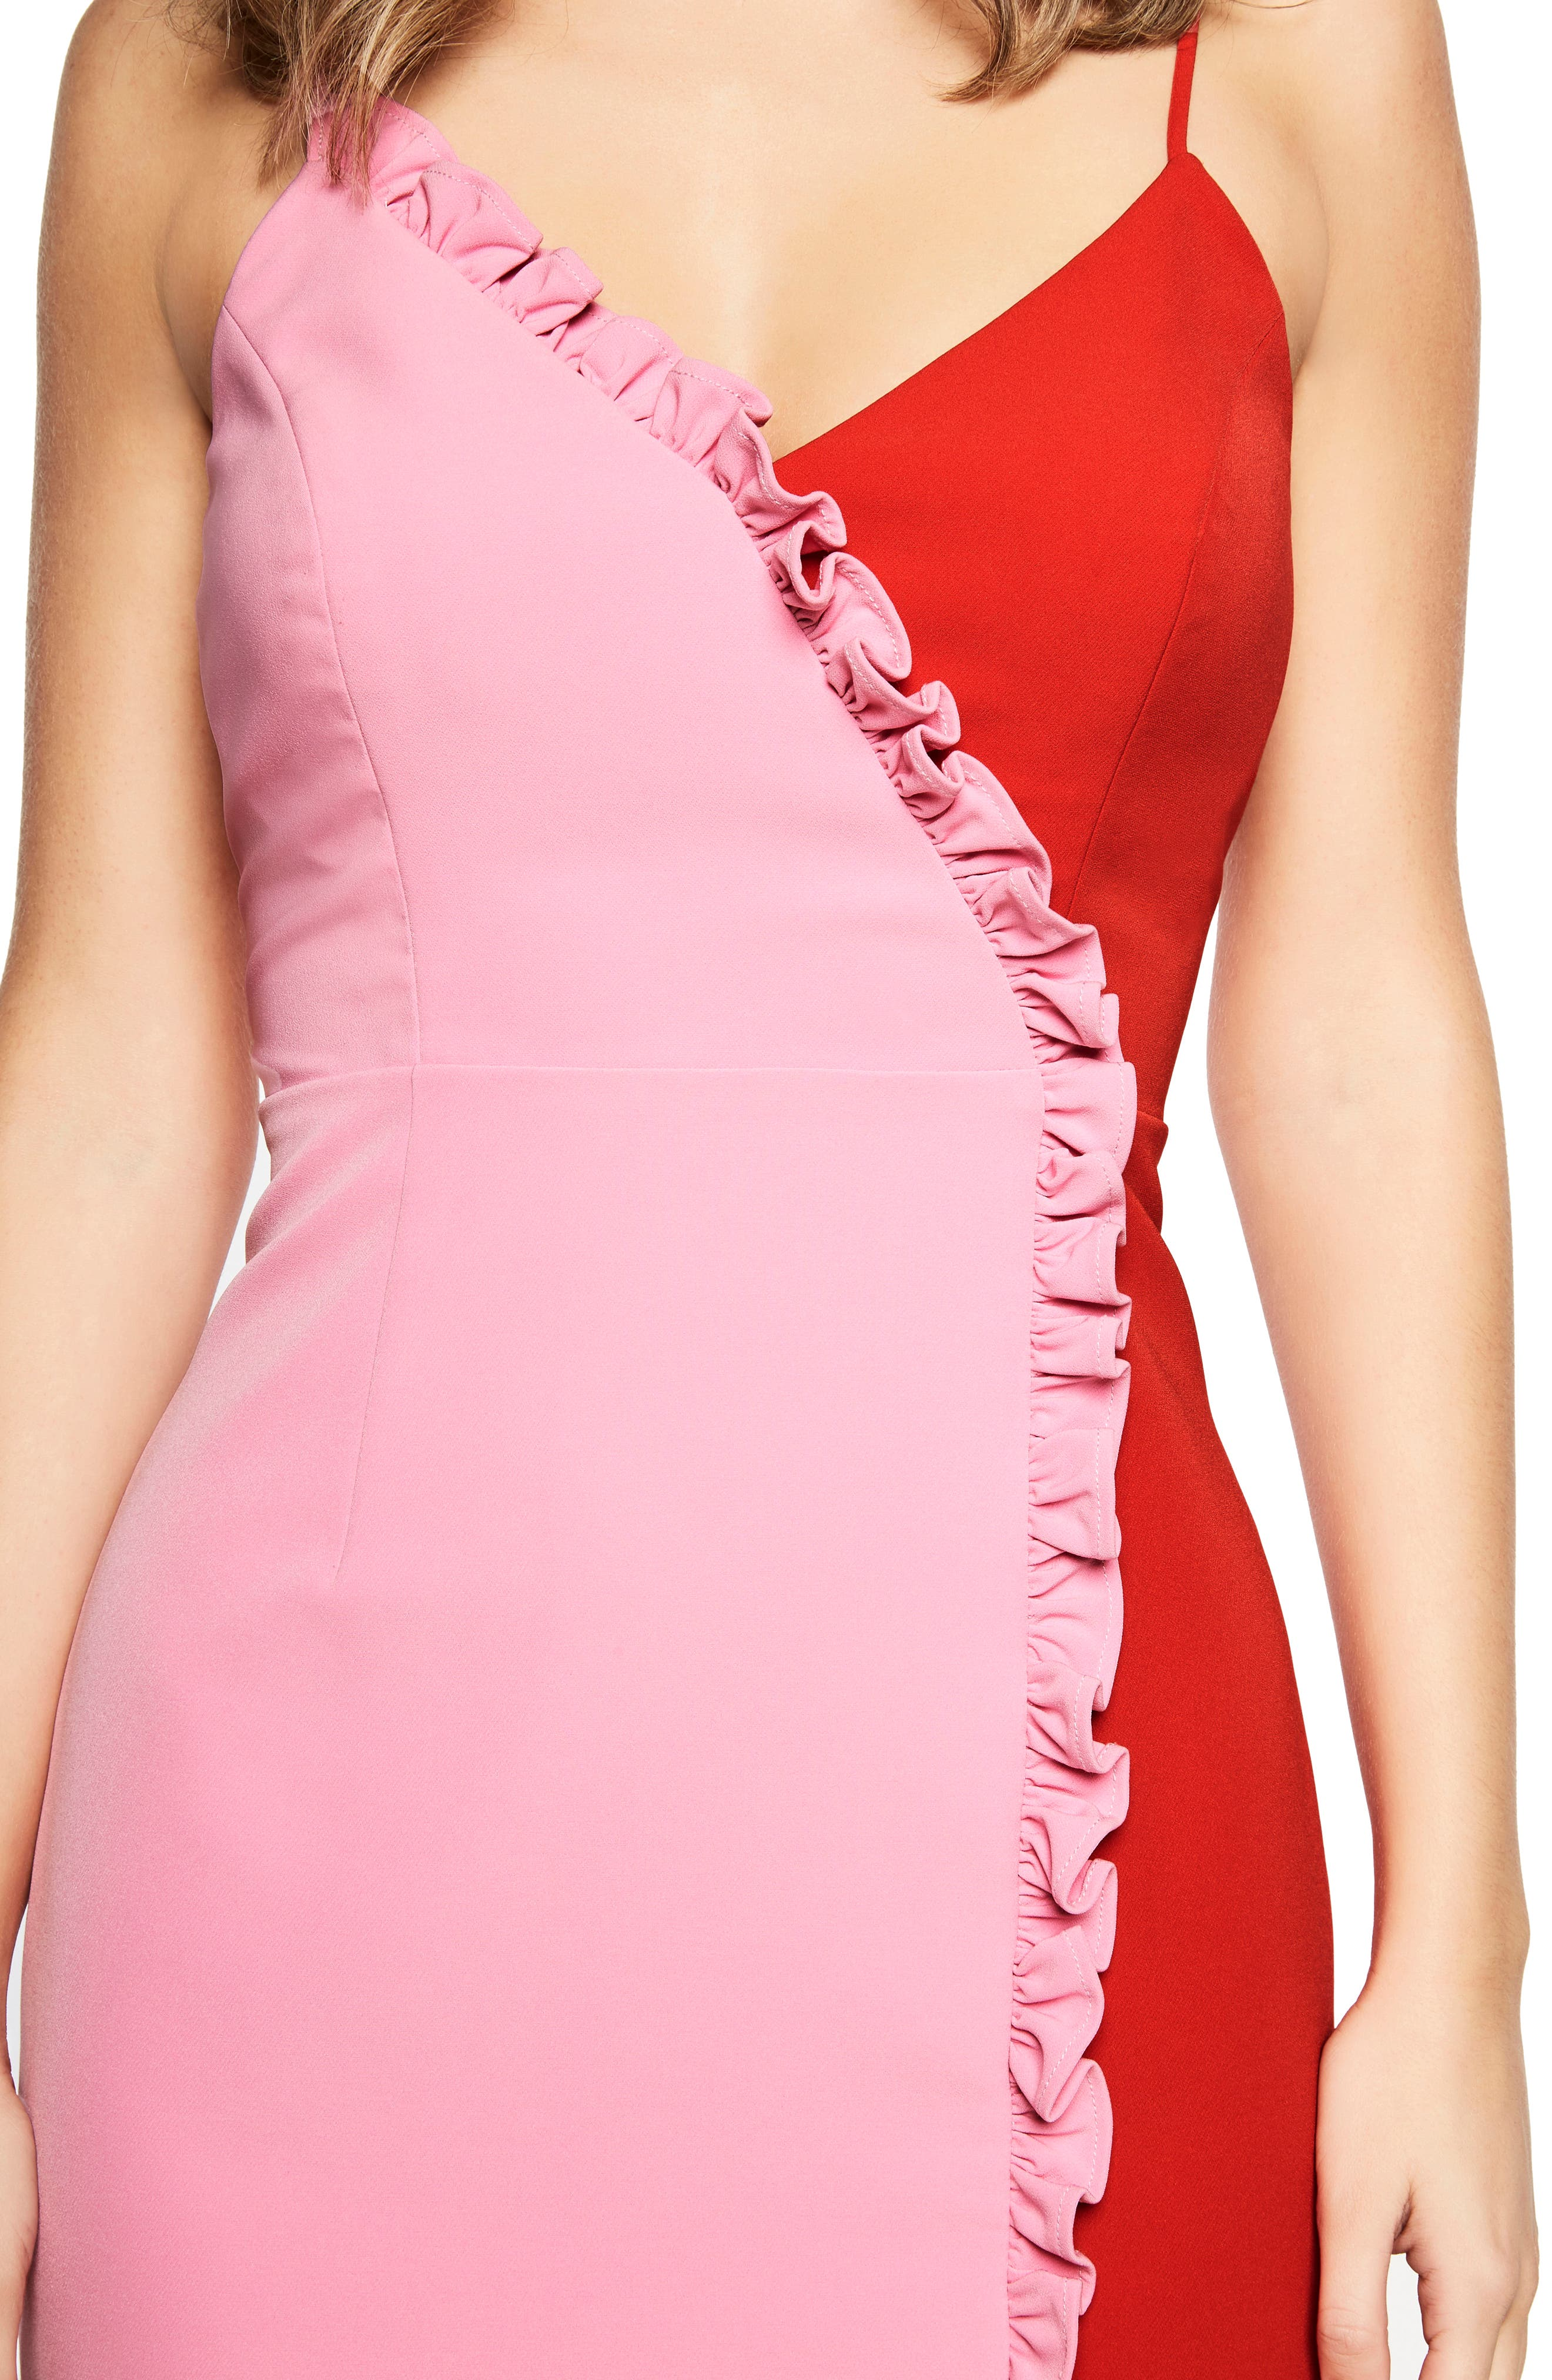 Sherbert Bomb Midi Dress,                             Alternate thumbnail 4, color,                             650